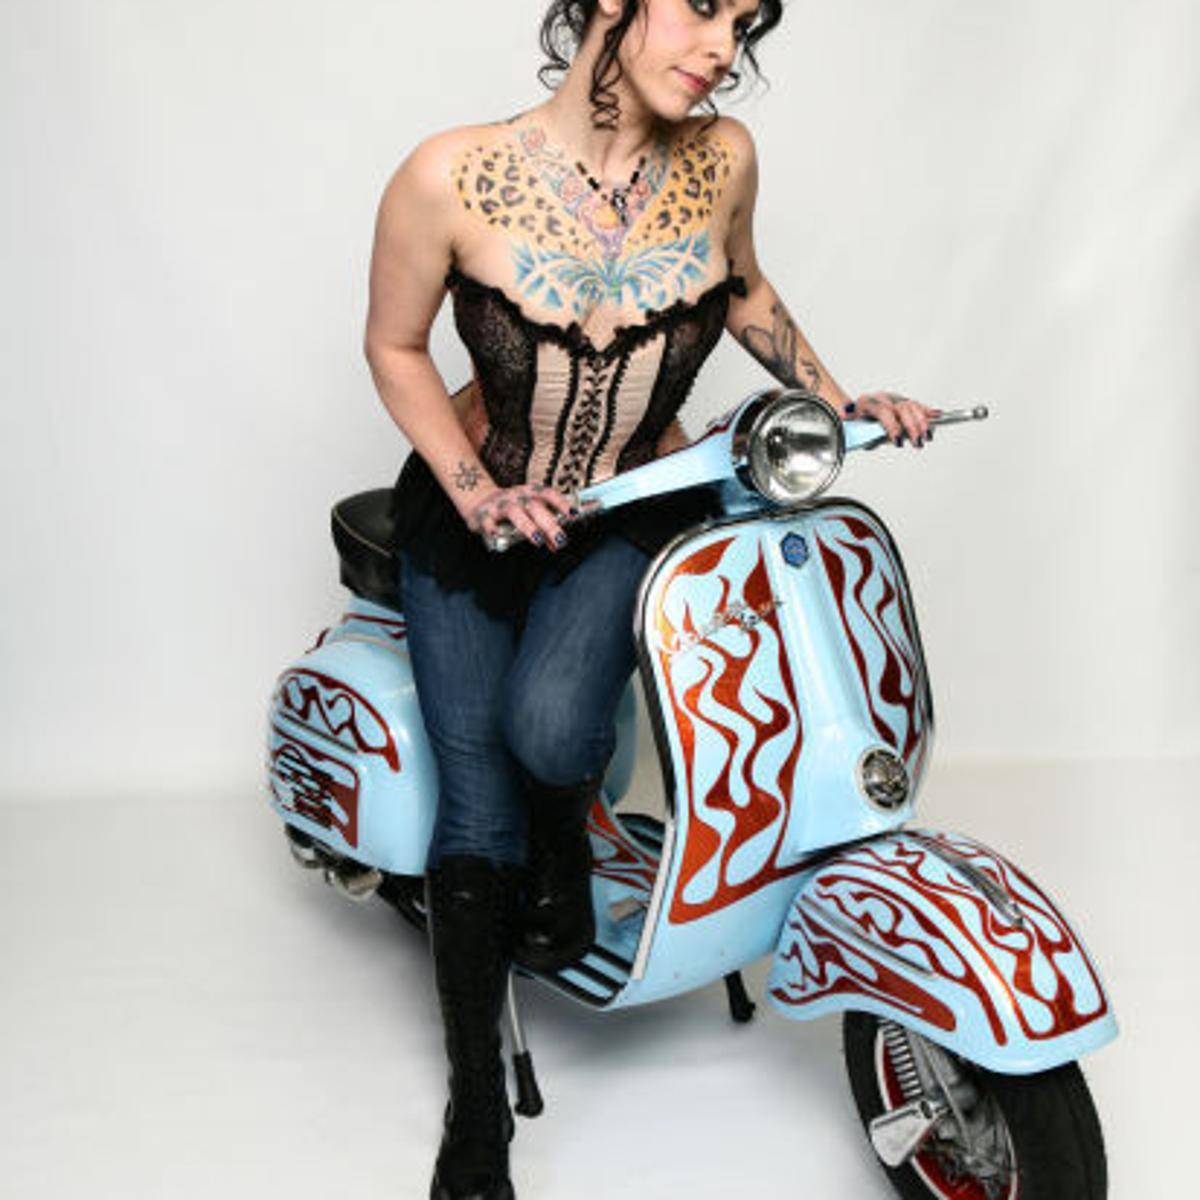 Danielle Off Of American Pickers photo 18